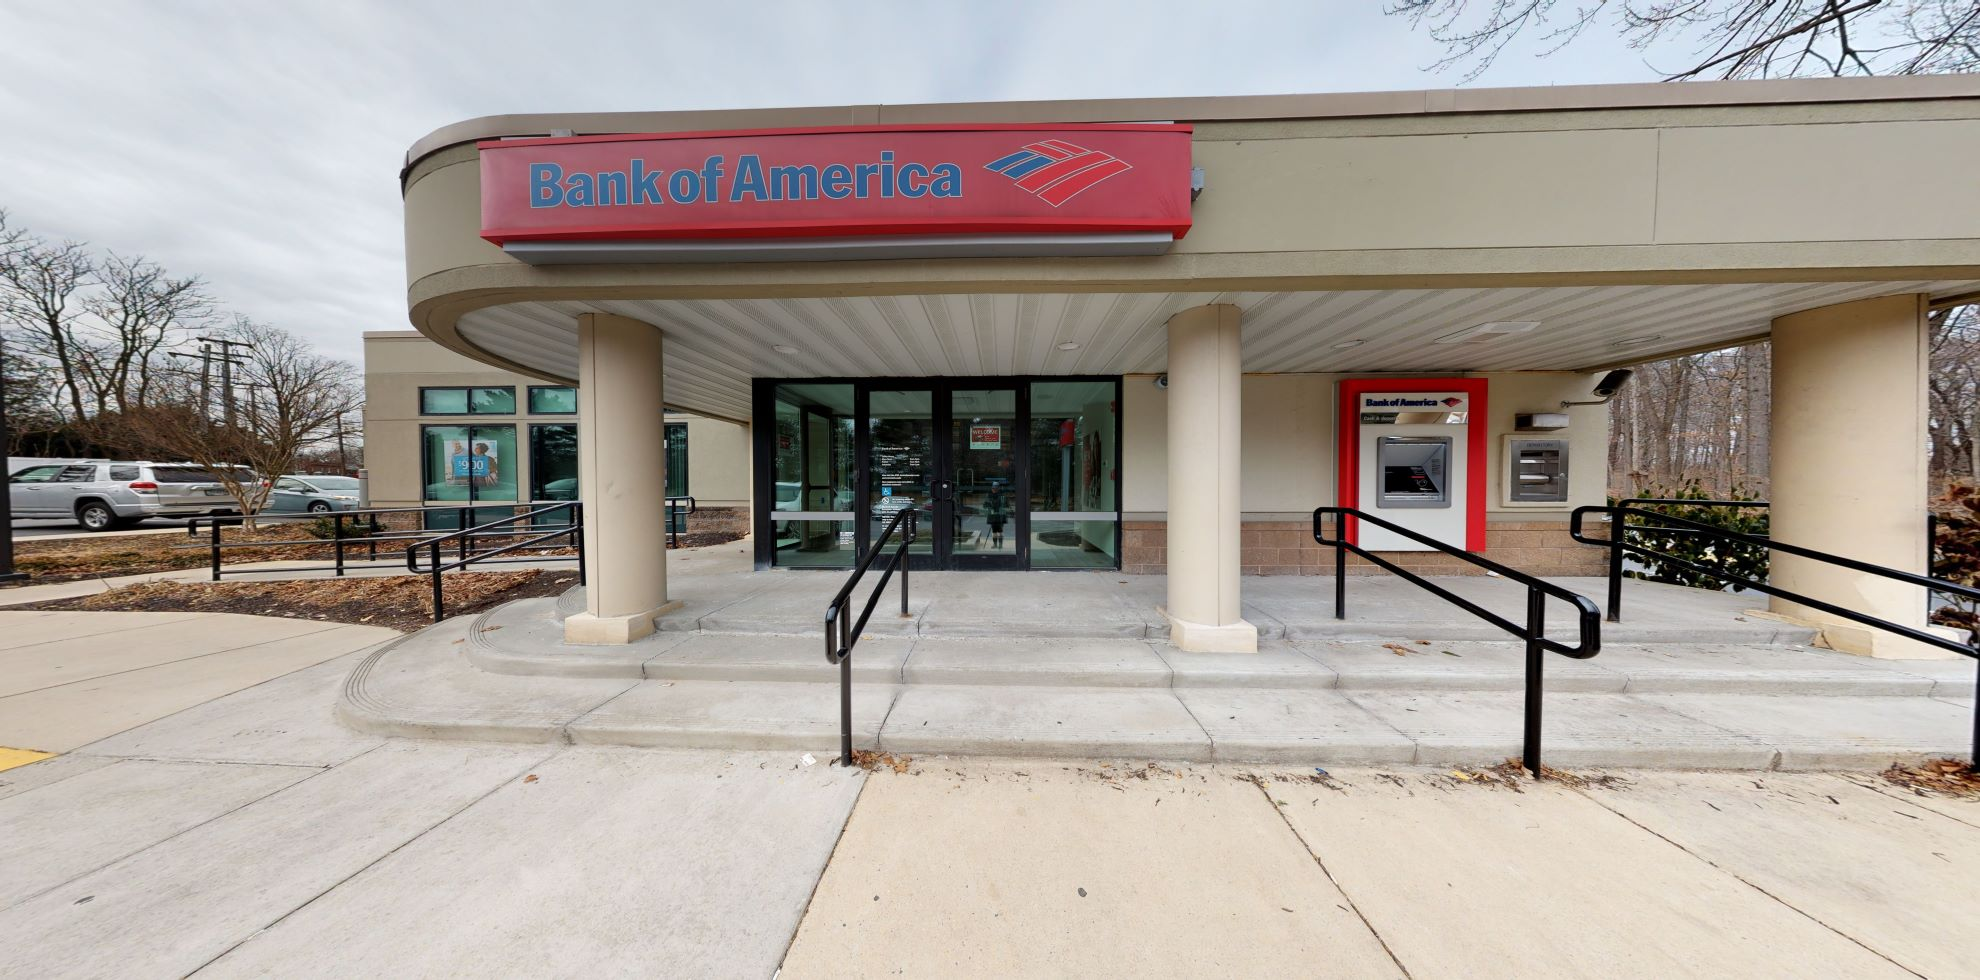 Bank of America financial center with drive-thru ATM and teller | 108 Old Court Rd, Pikesville, MD 21208